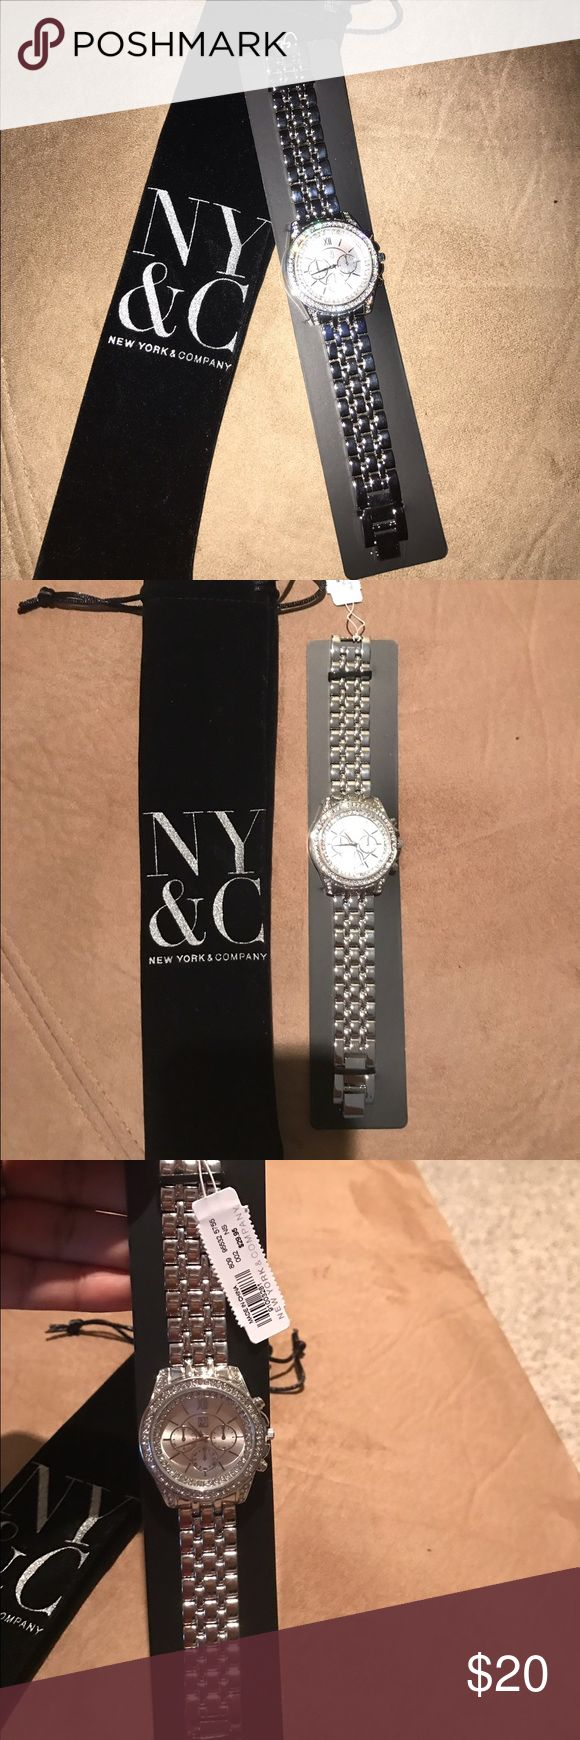 Lady's watch!! Brand new !! New York & company watch!! New York & Company Jewelry Bracelets